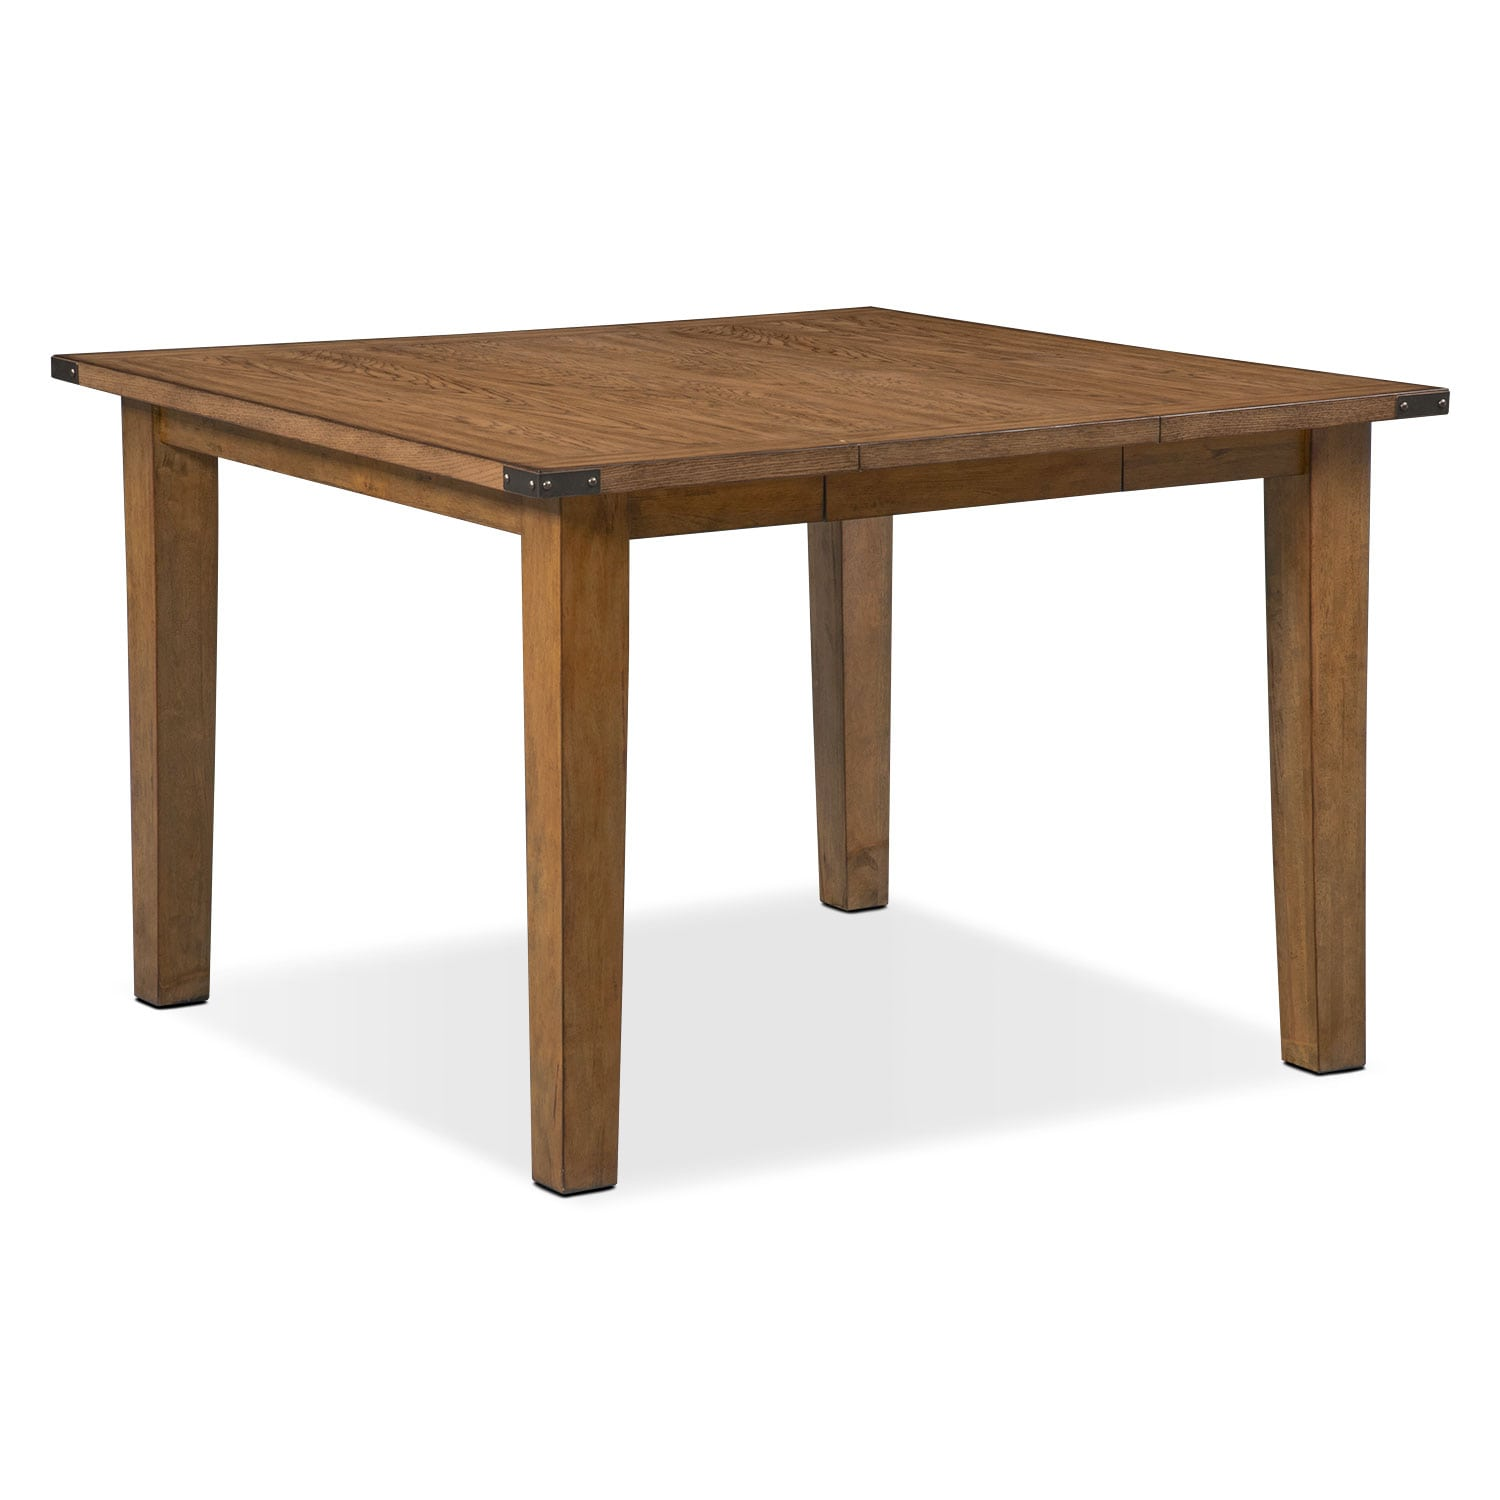 [Salem Counter-Height Table - Pecan]